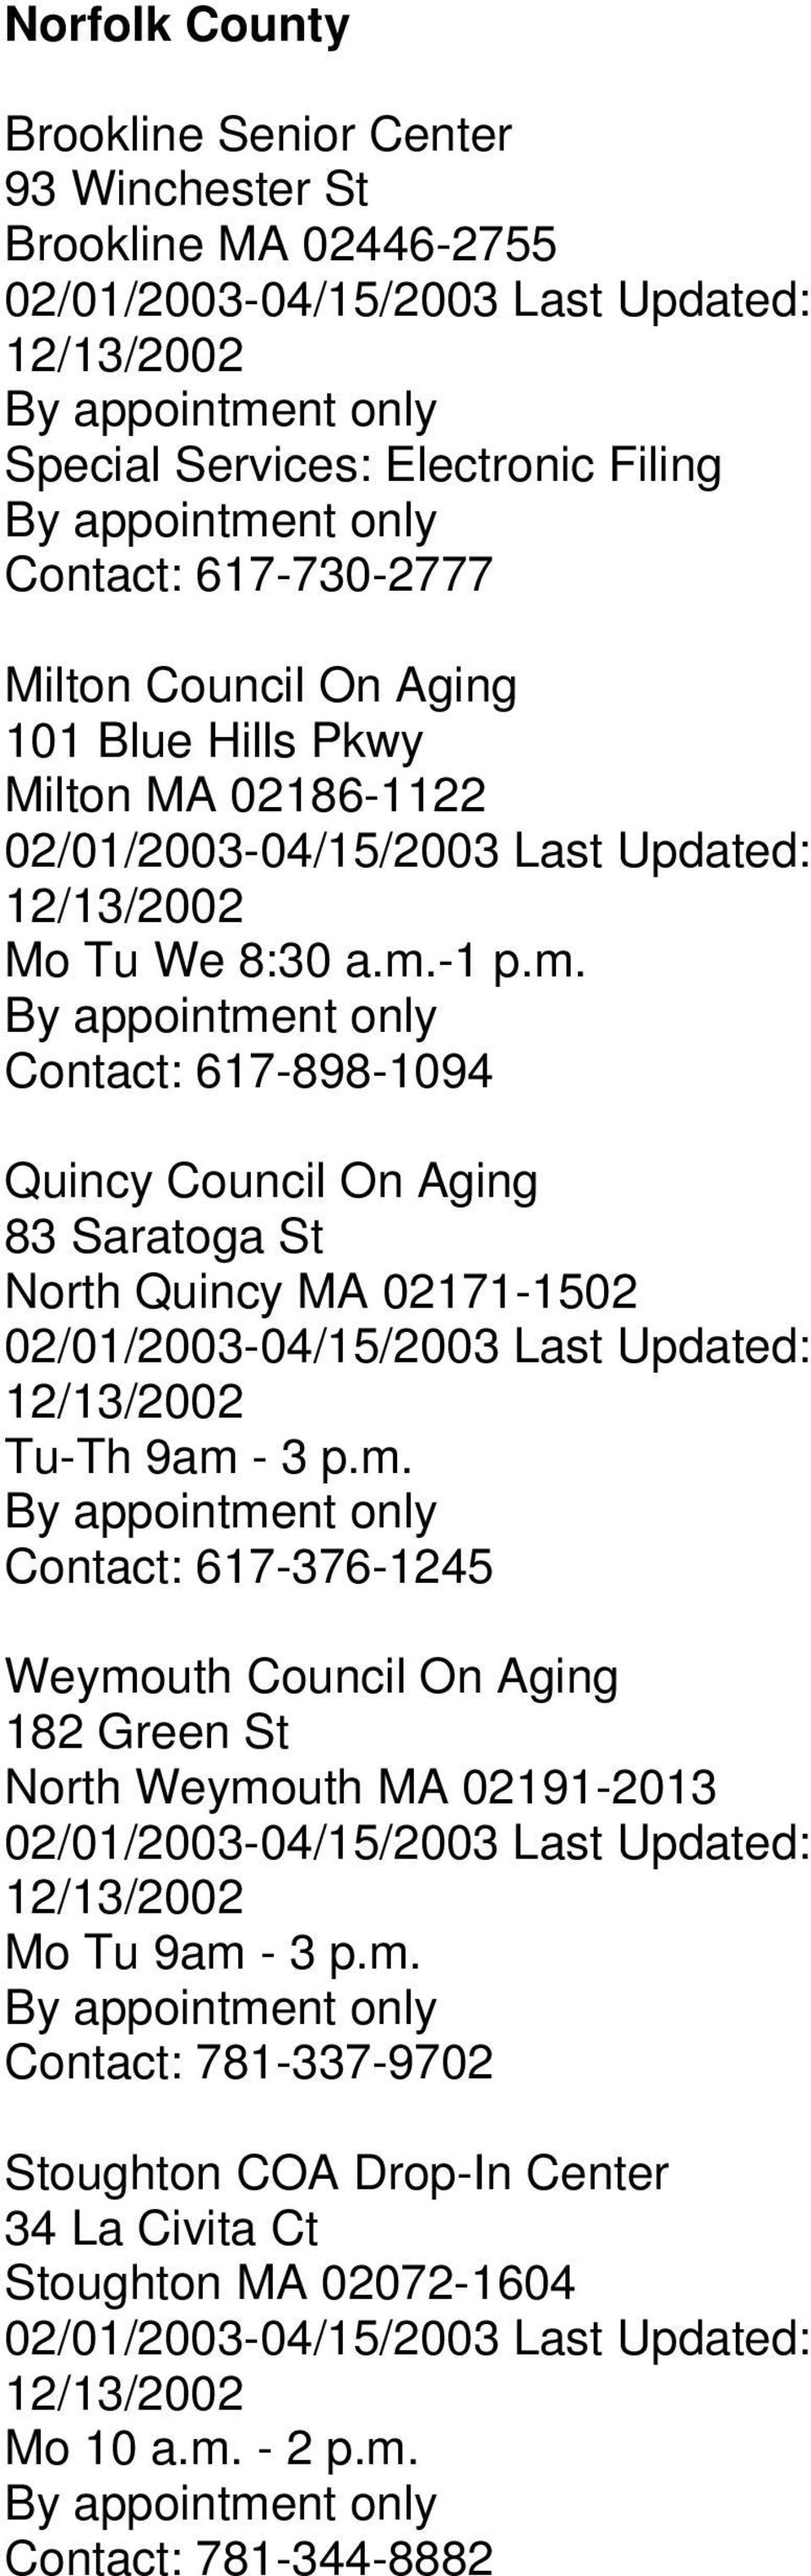 -1 p.m. Contact: 617-898-1094 Quincy Council On Aging 83 Saratoga St North Quincy MA 02171-1502 Tu-Th 9am - 3 p.m. Contact: 617-376-1245 Weymouth Council On Aging 182 Green St North Weymouth MA 02191-2013 Mo Tu 9am - 3 p.